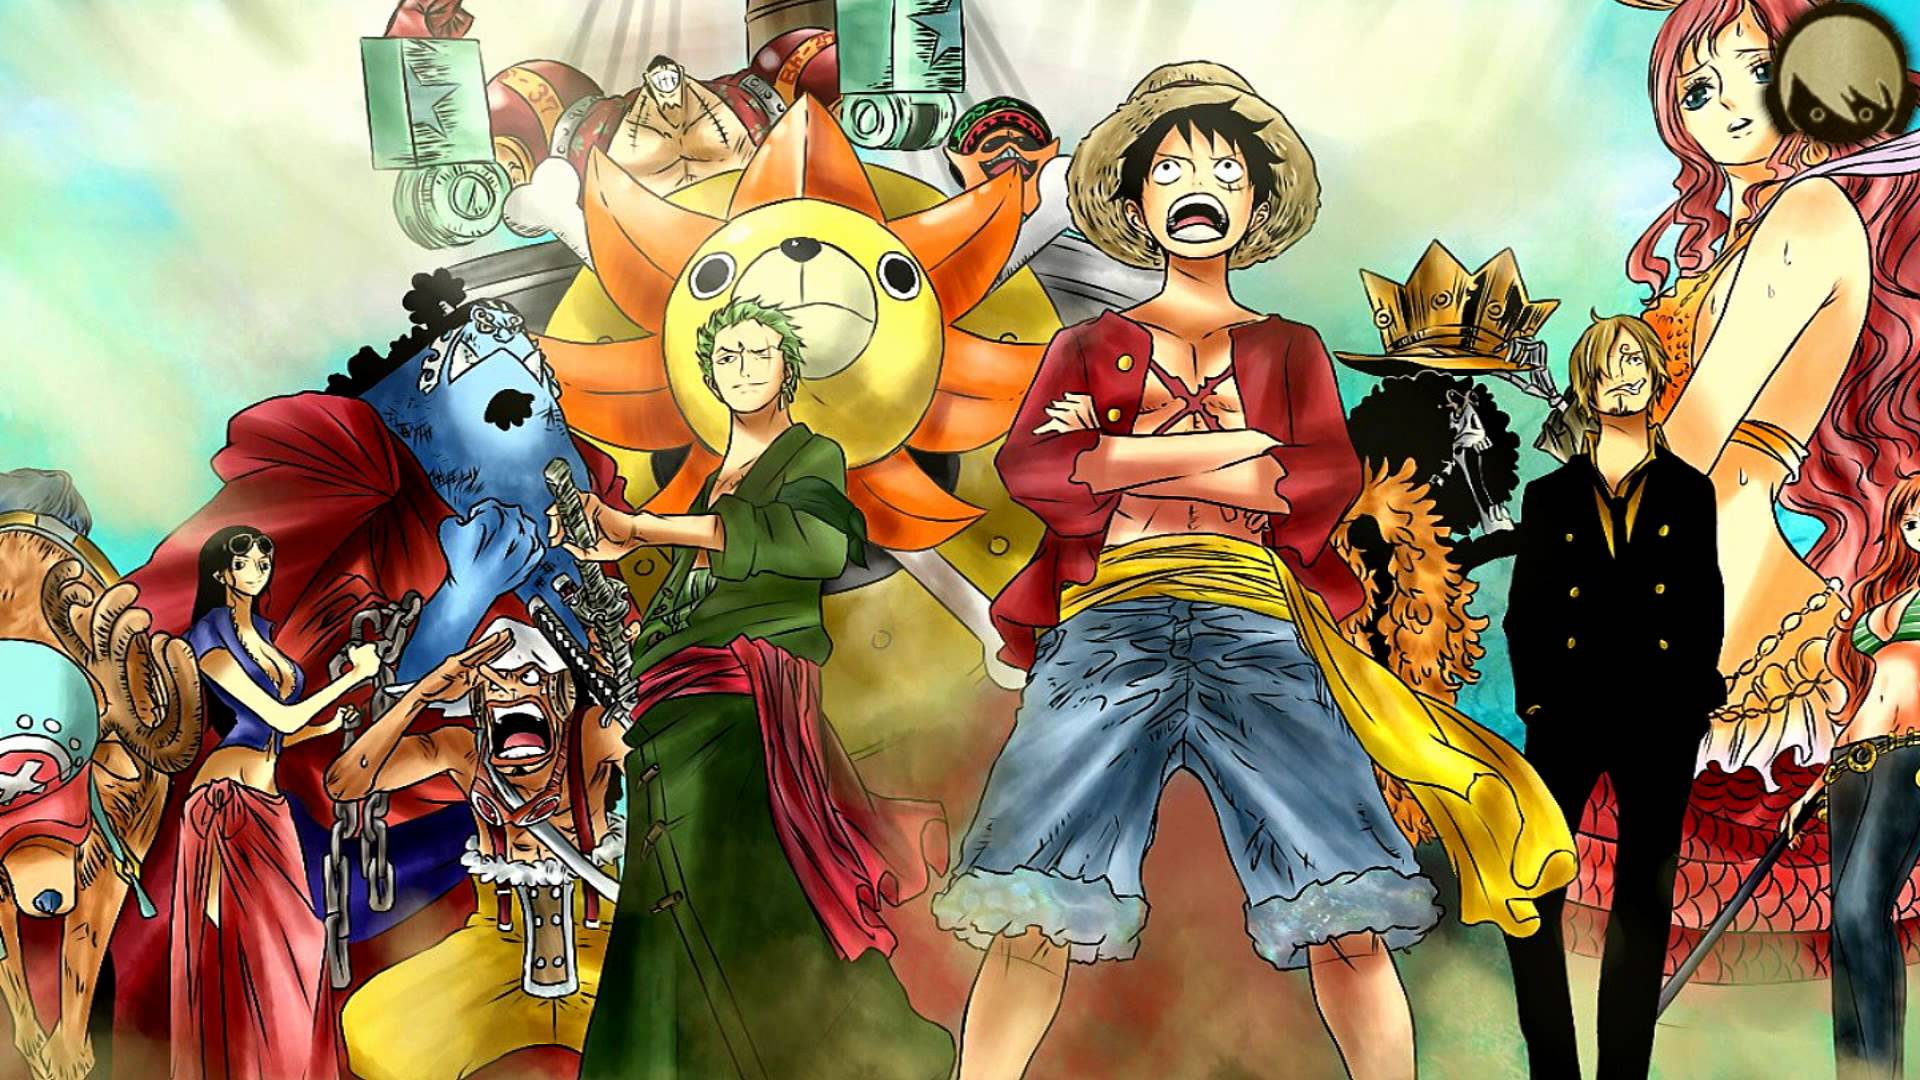 One Piece Epic HD Wallpapers and Photos   ImgHD Browse and Download 1920x1080